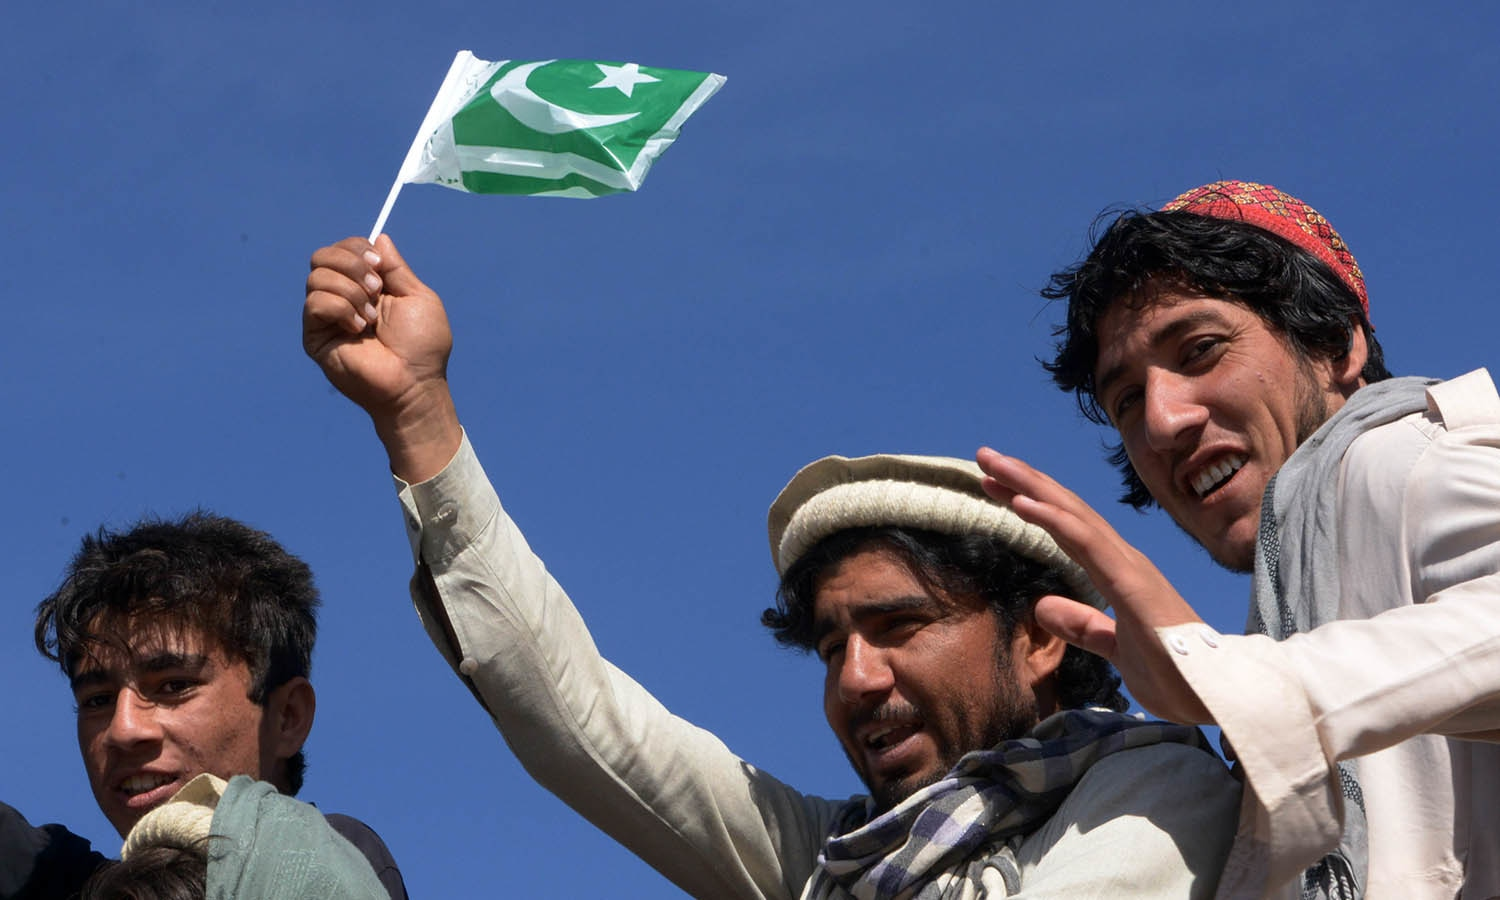 Pakistan: Senate Approves Fata-KP Merger Bill by 71-5 Votes, KP Assembly to Meet on 27 May